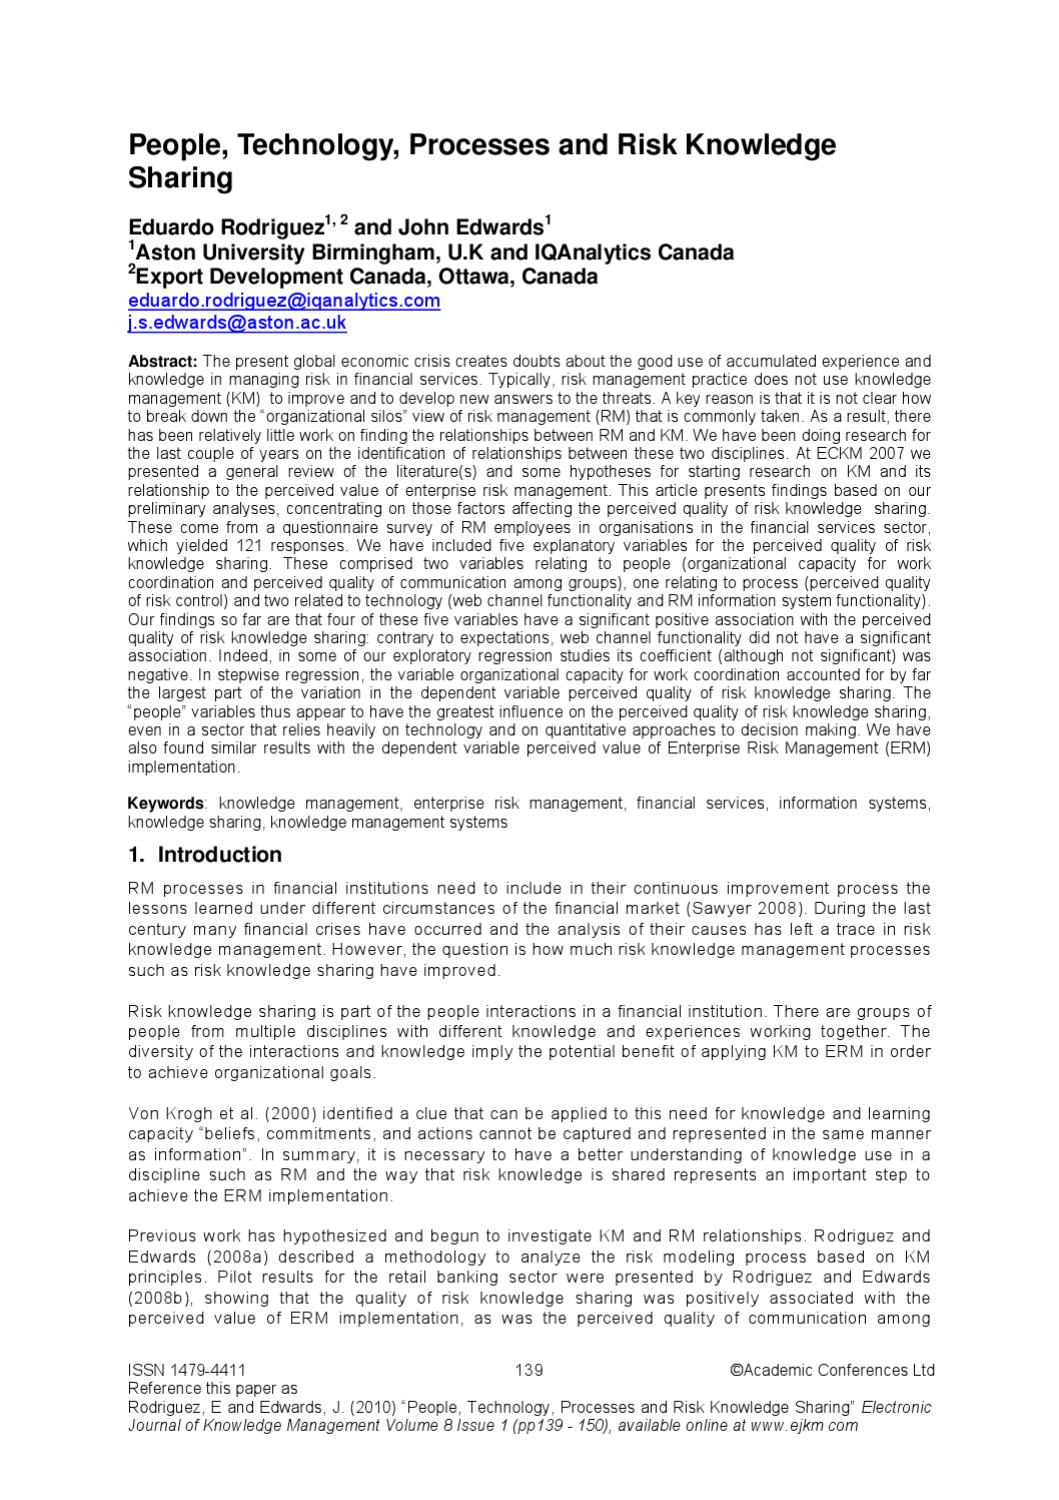 a case study on knowledge management implementation in the banking sector